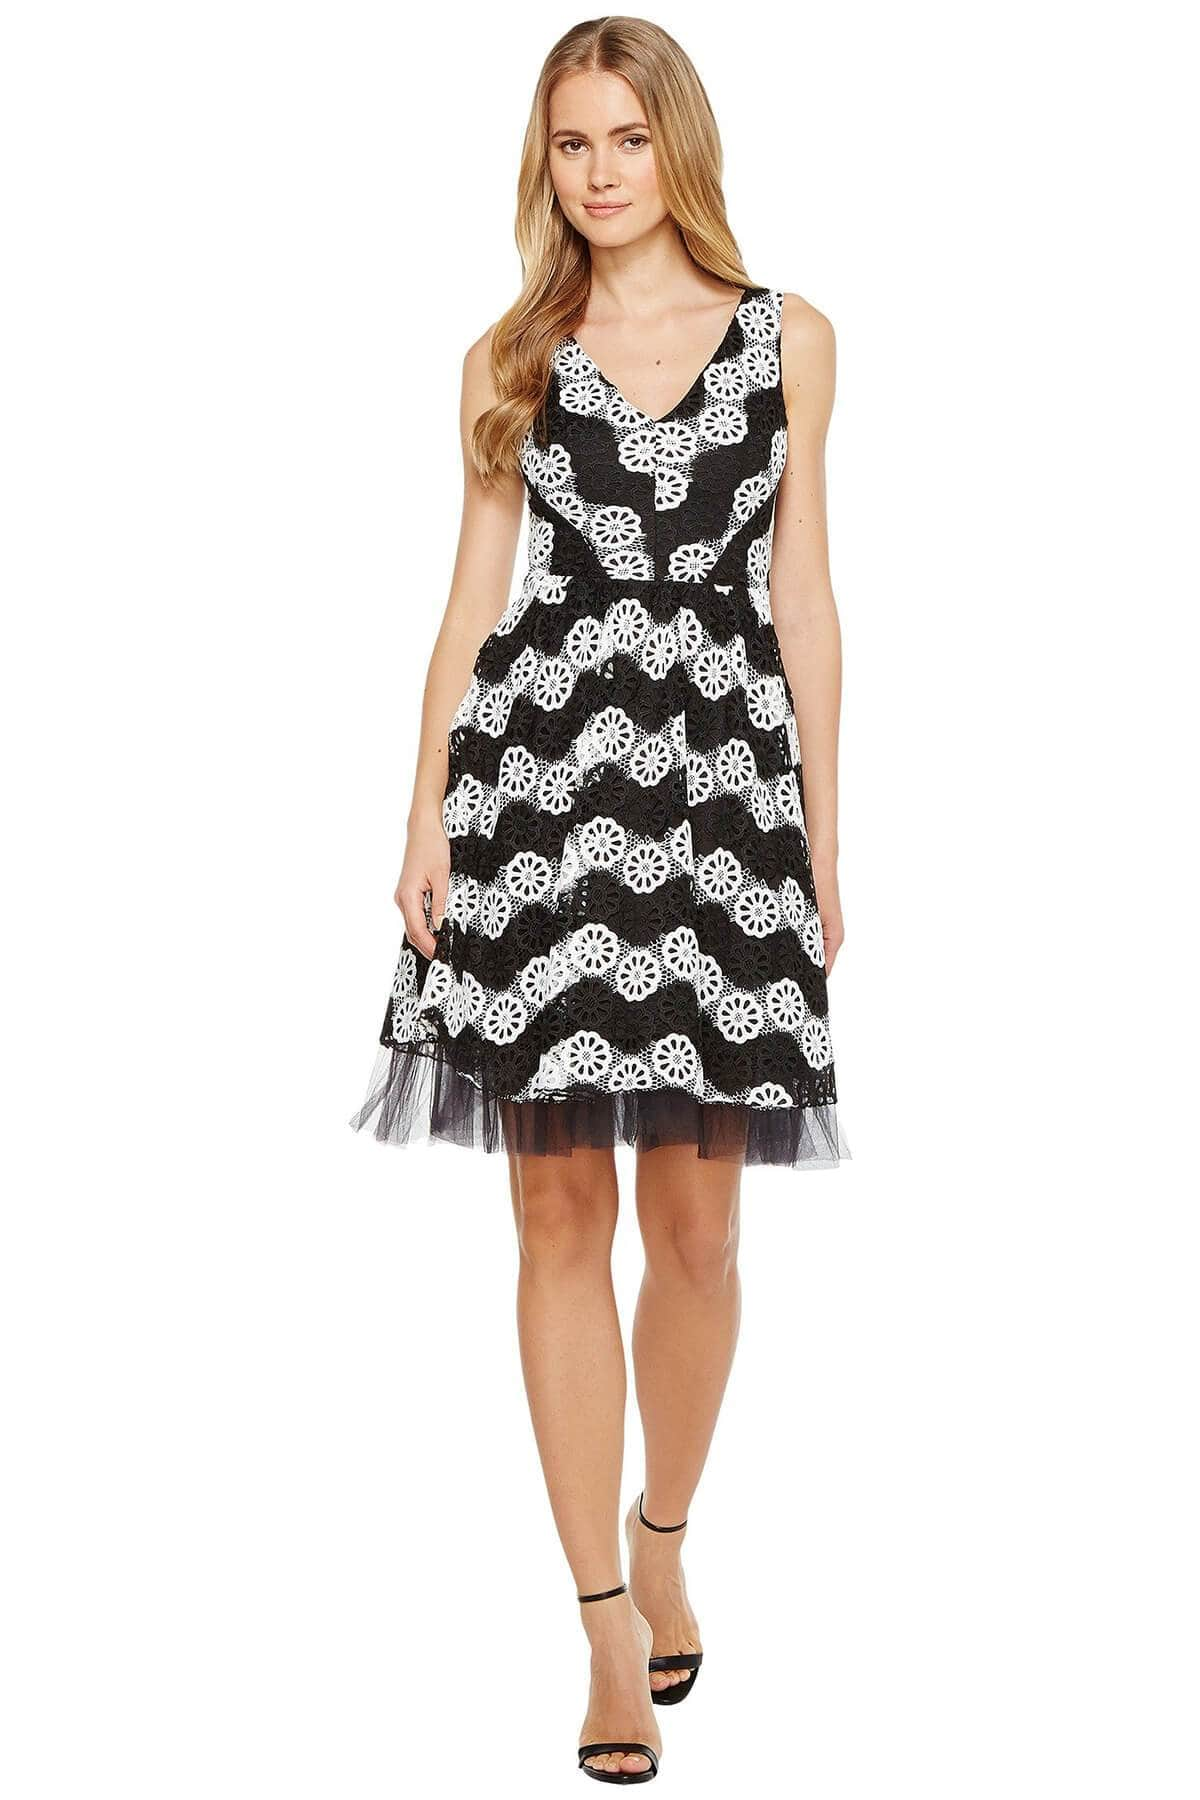 Eva Franco Dress Valeria Dress - B&W